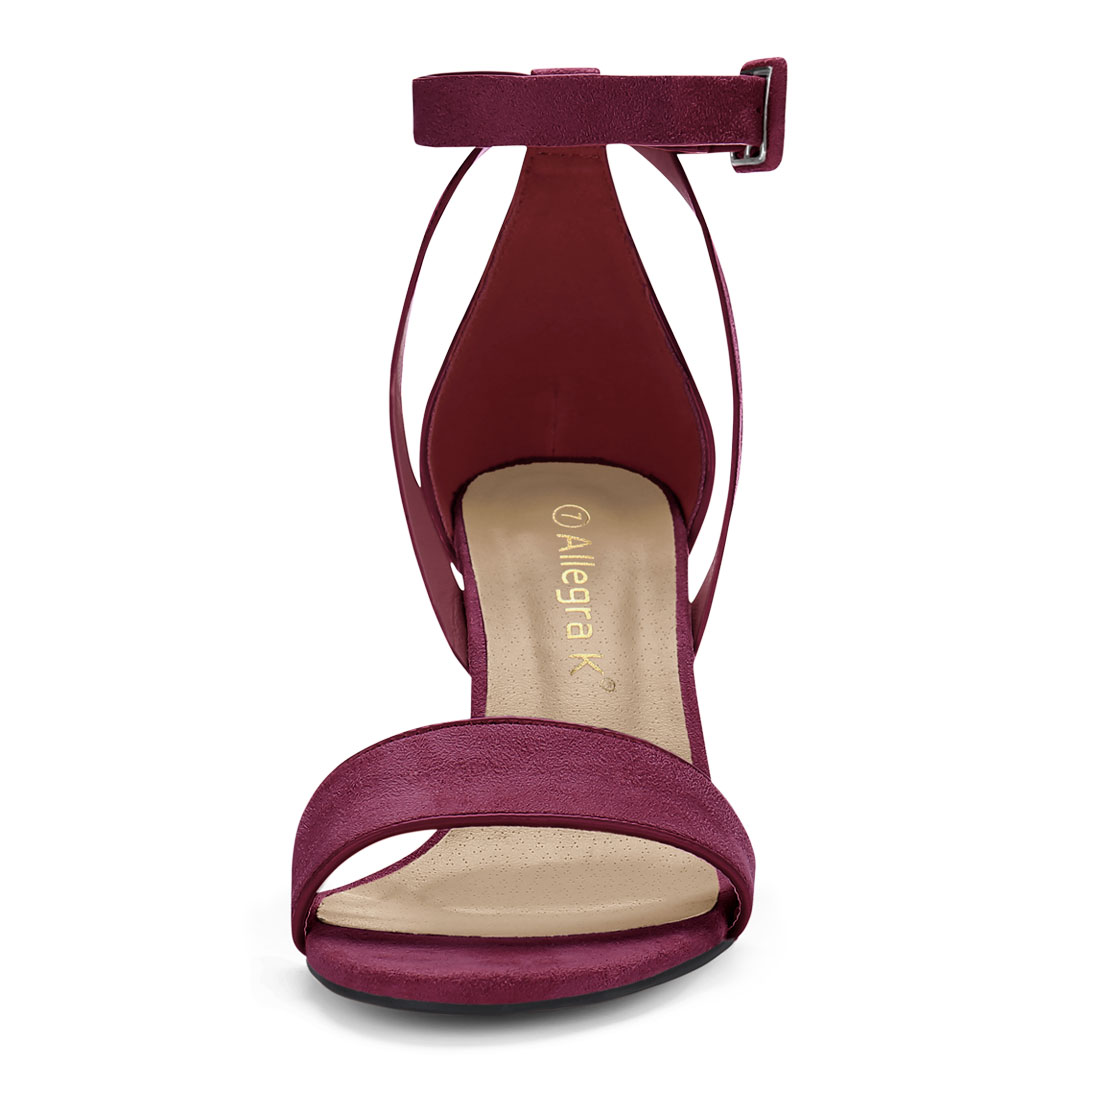 467b7f97c12 HJ284-5 Women PU Panel Piped Chunky Heel Ankle Strap Sandals Burgundy US 5.5